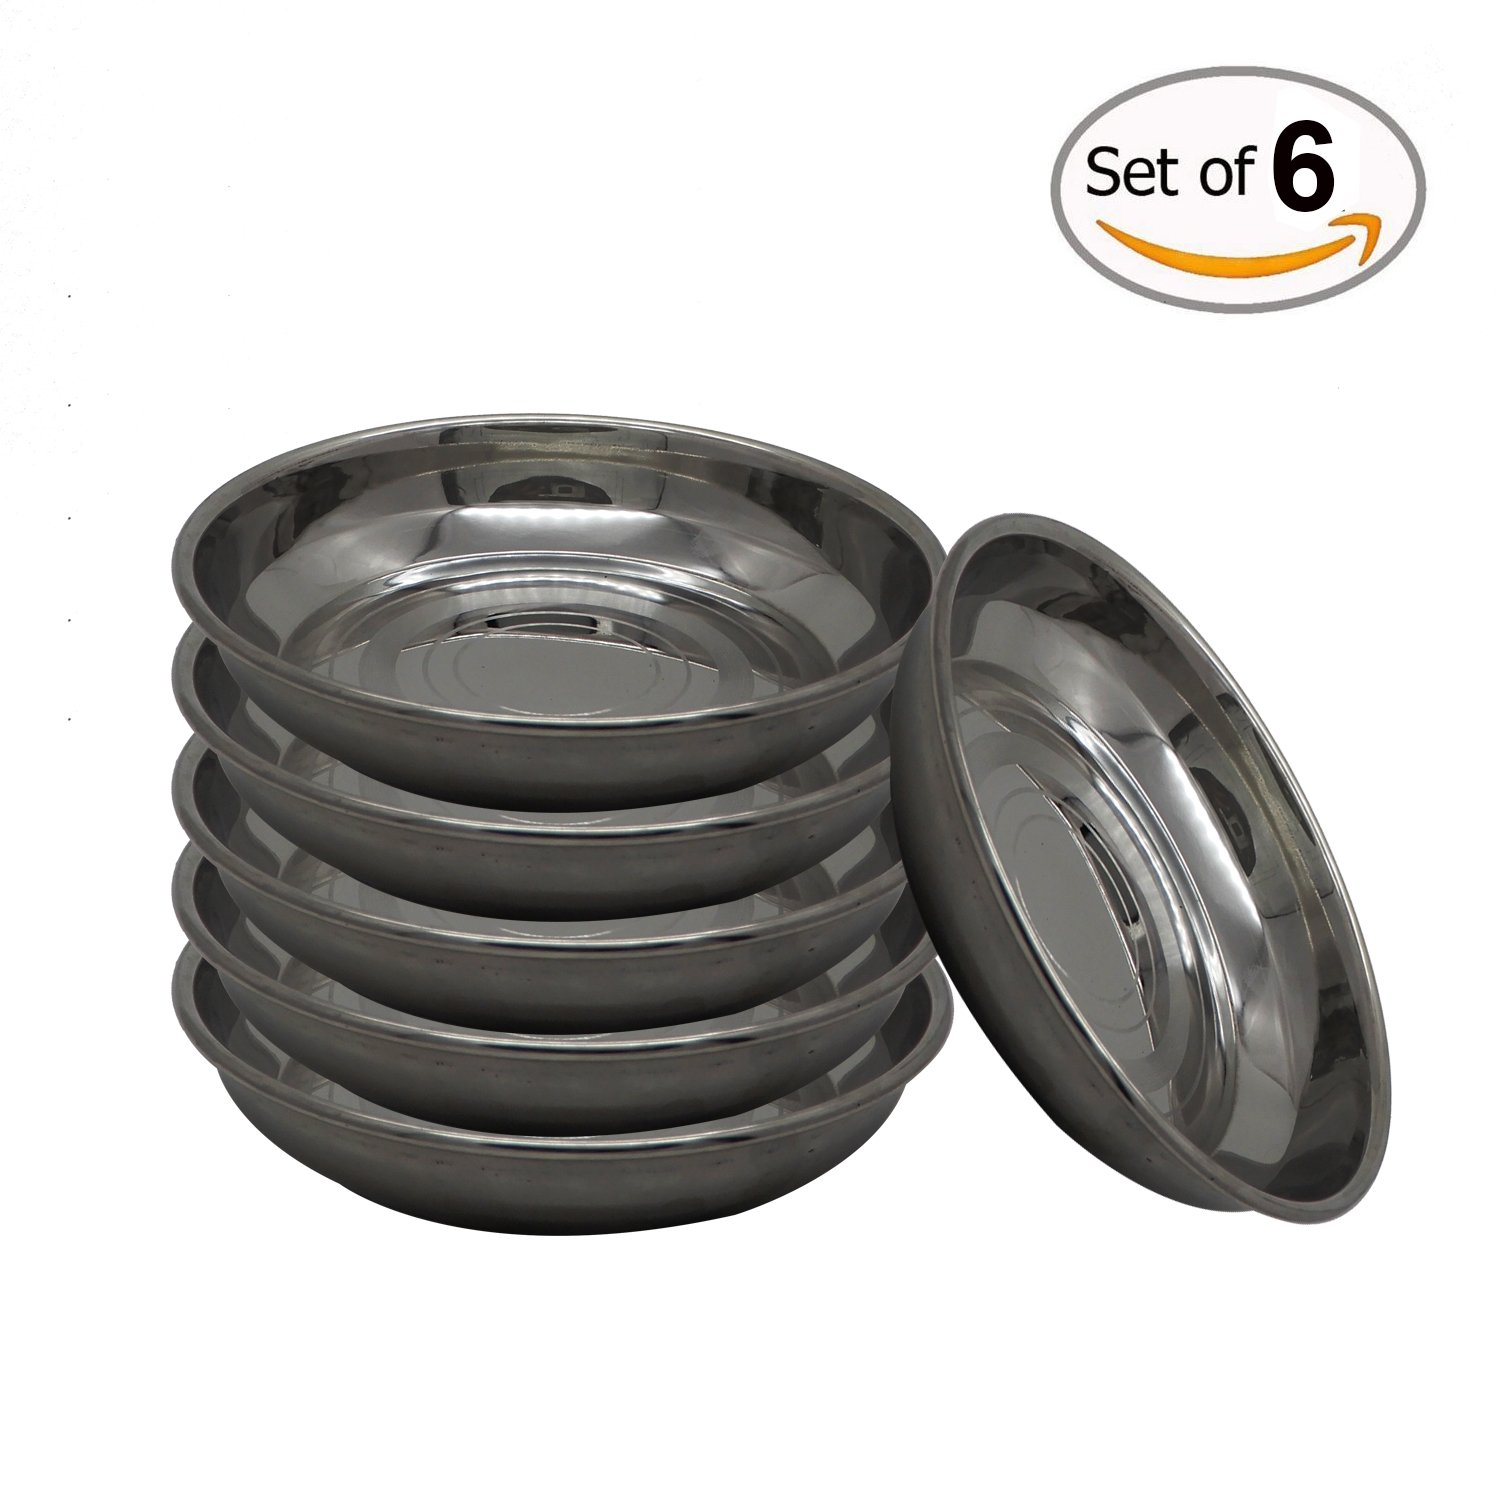 WhopperIndia Stainless Steel Dinner Plate Dish Food Holder Container Plates, Pack of 6 Size 4.5 Inch